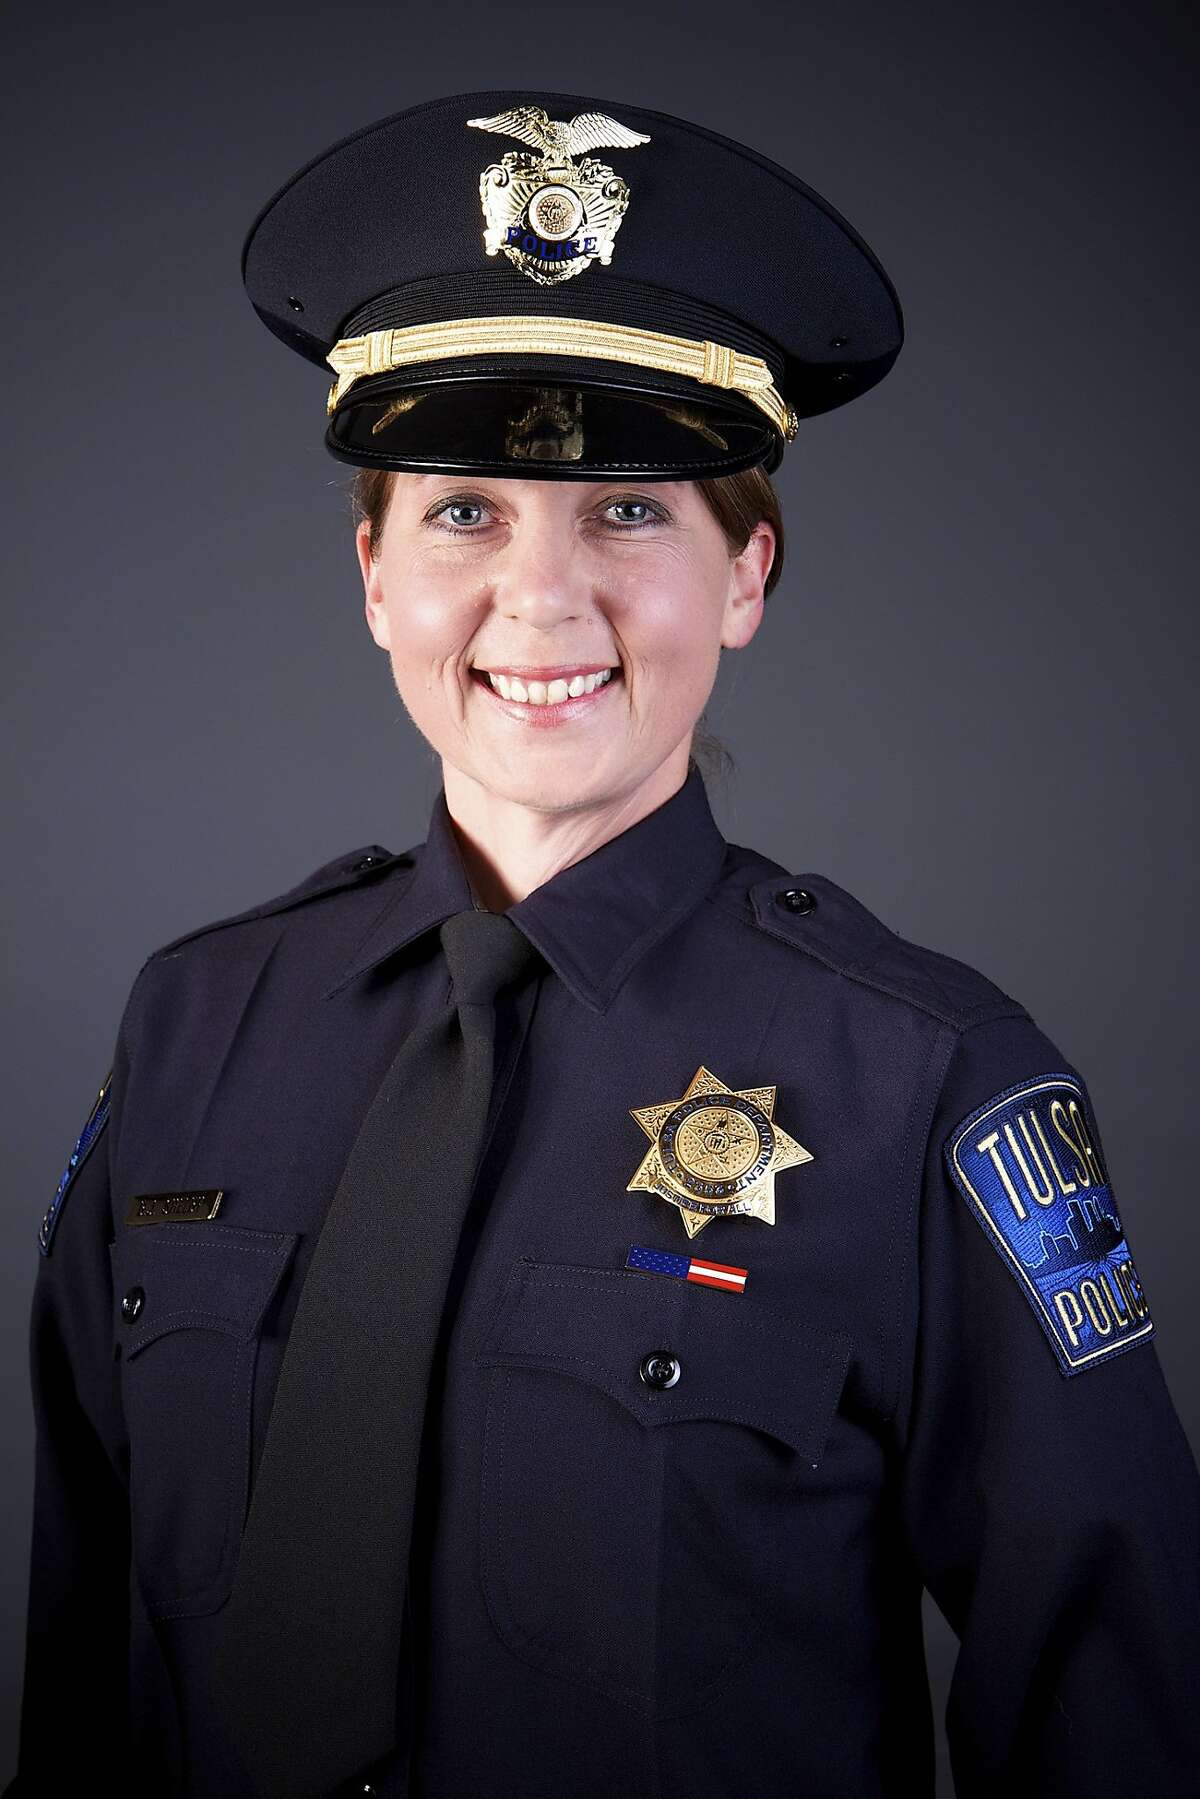 In an undated photo provided by the Tulsa Police Department, Betty Shelby, the officer who fatally shot Terence Crutcher, an unarmed black man, on Sept. 16, 2016. Shelby, a five-year veteran of the force, was charged with first-degree manslaughter on Sept. 22; Through a lawyer, Shelby has said that Crutcher was behaving erratically and refused to comply with commands. (Tulsa Police Department via The New York Times) -- FOR EDITORIAL USE ONLY --